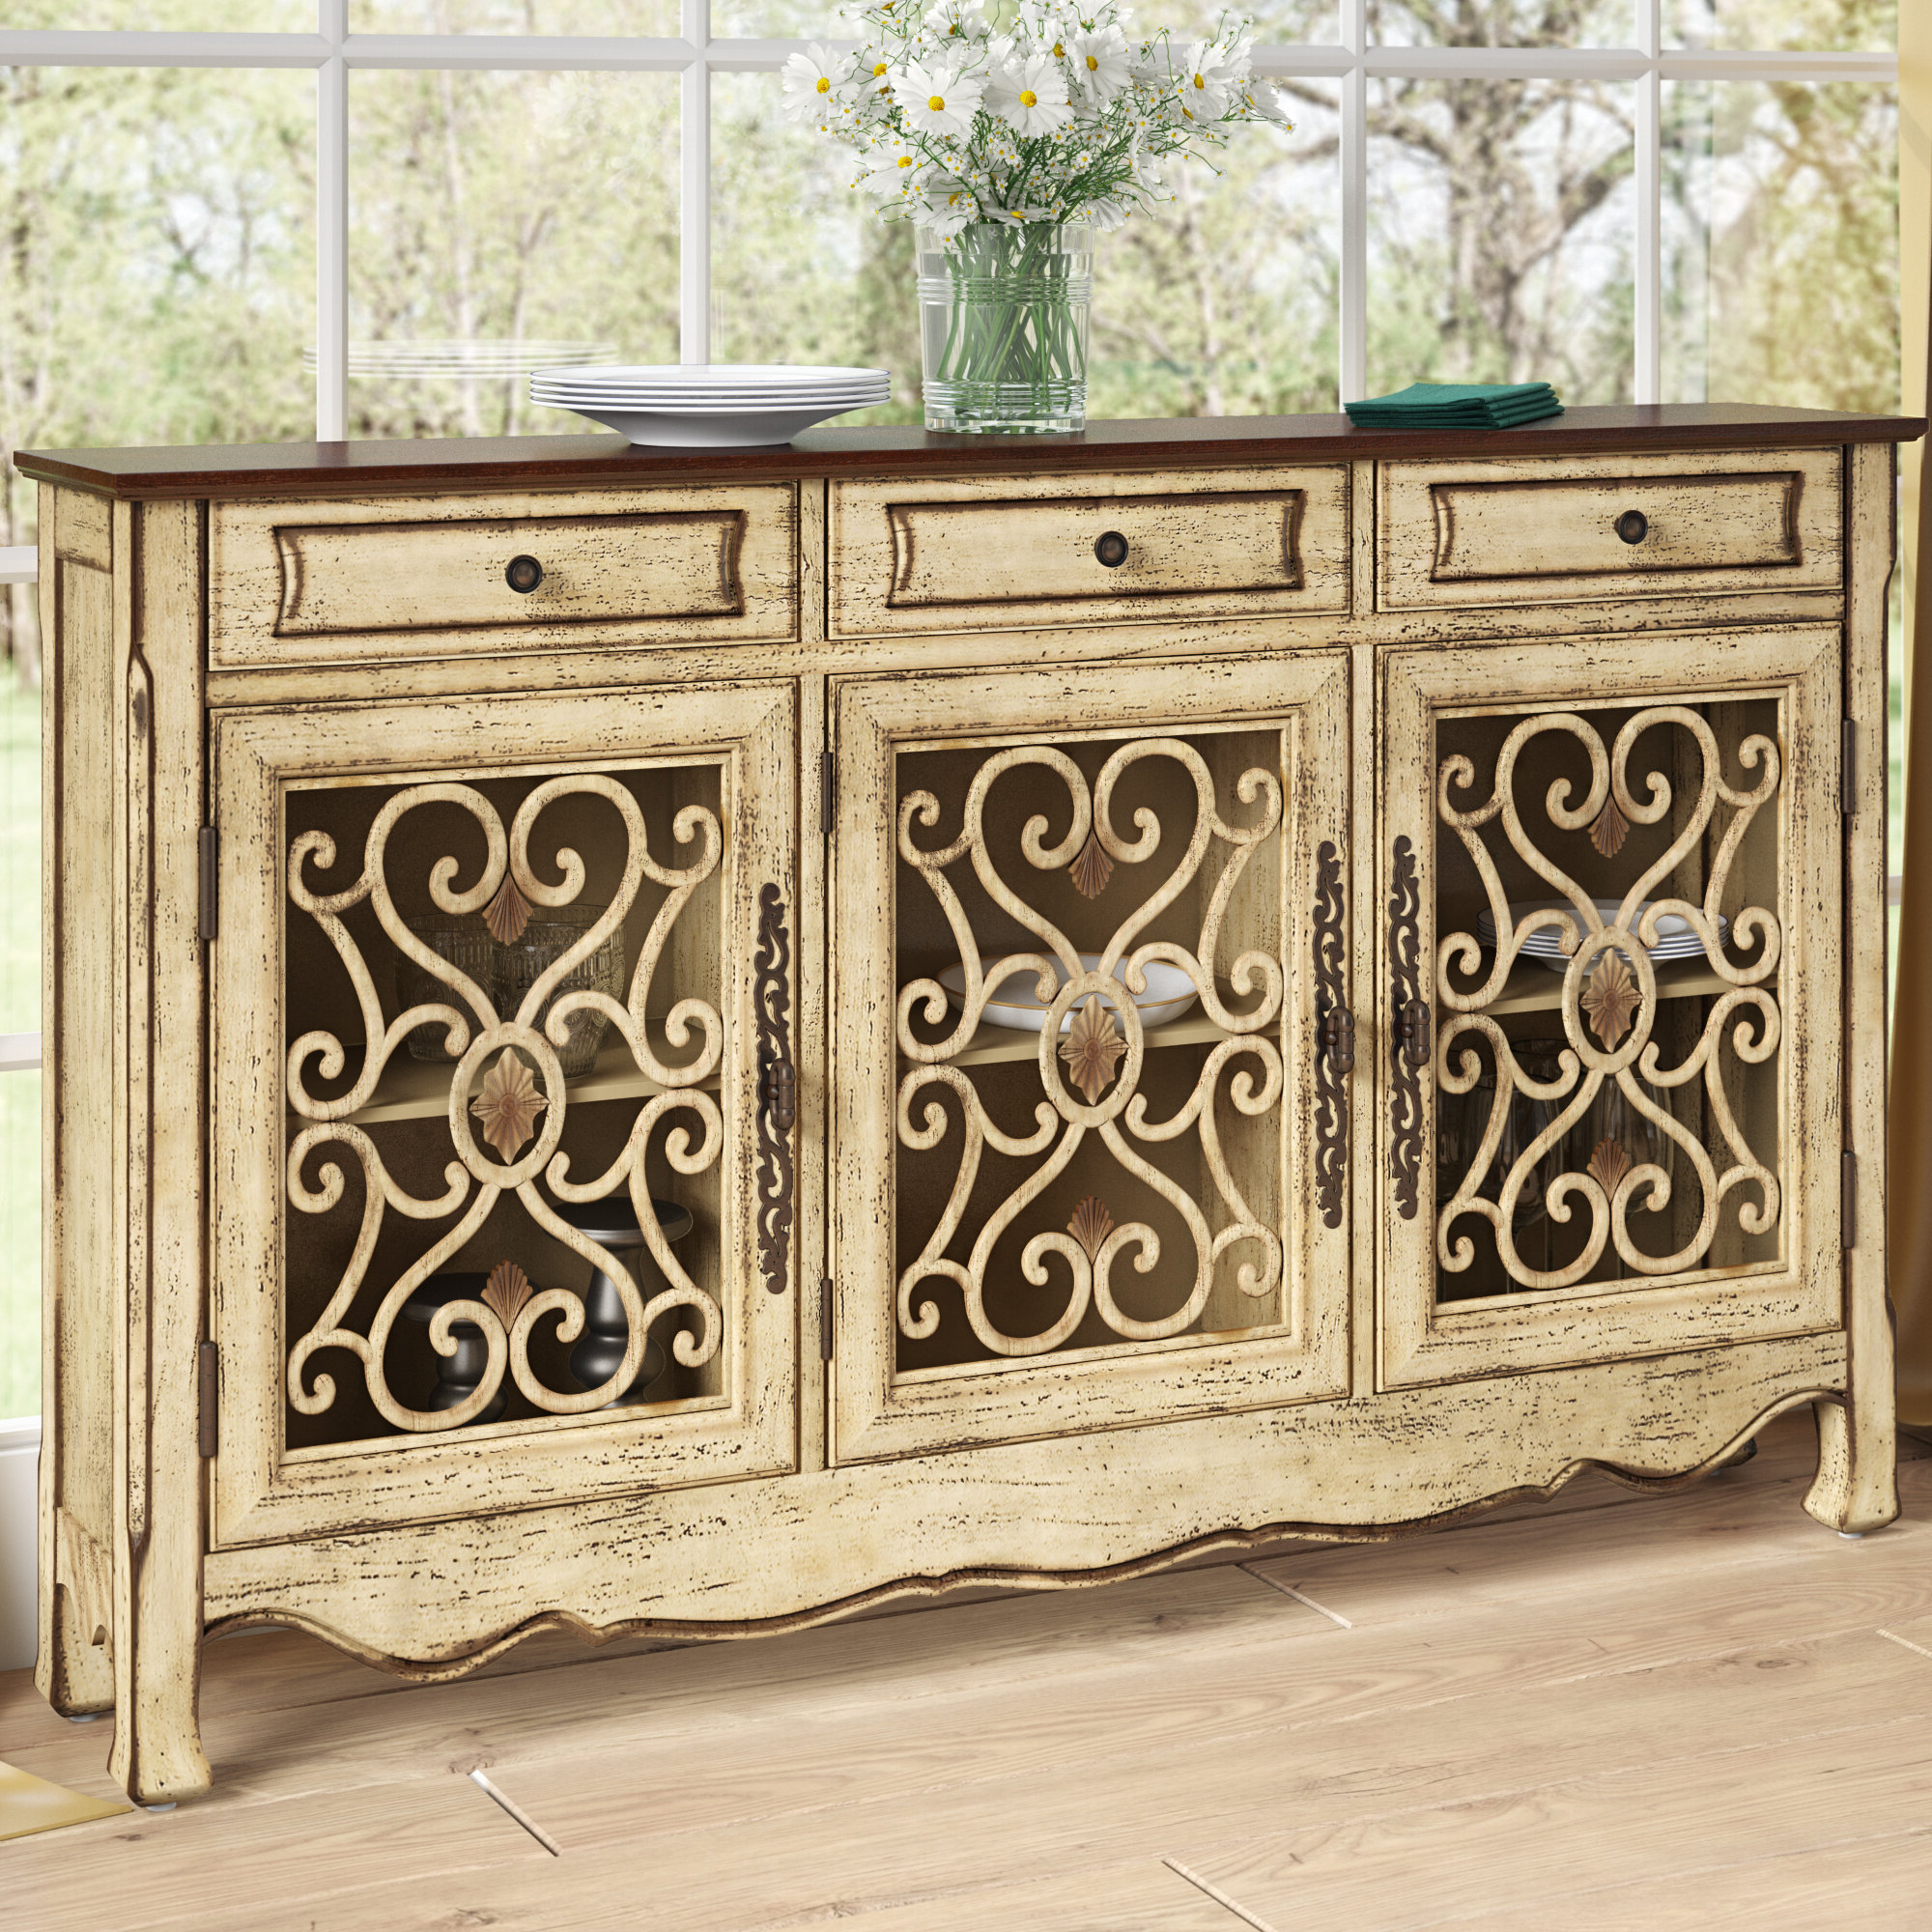 Mauzy Sideboard Pertaining To Mauzy Sideboards (View 16 of 20)